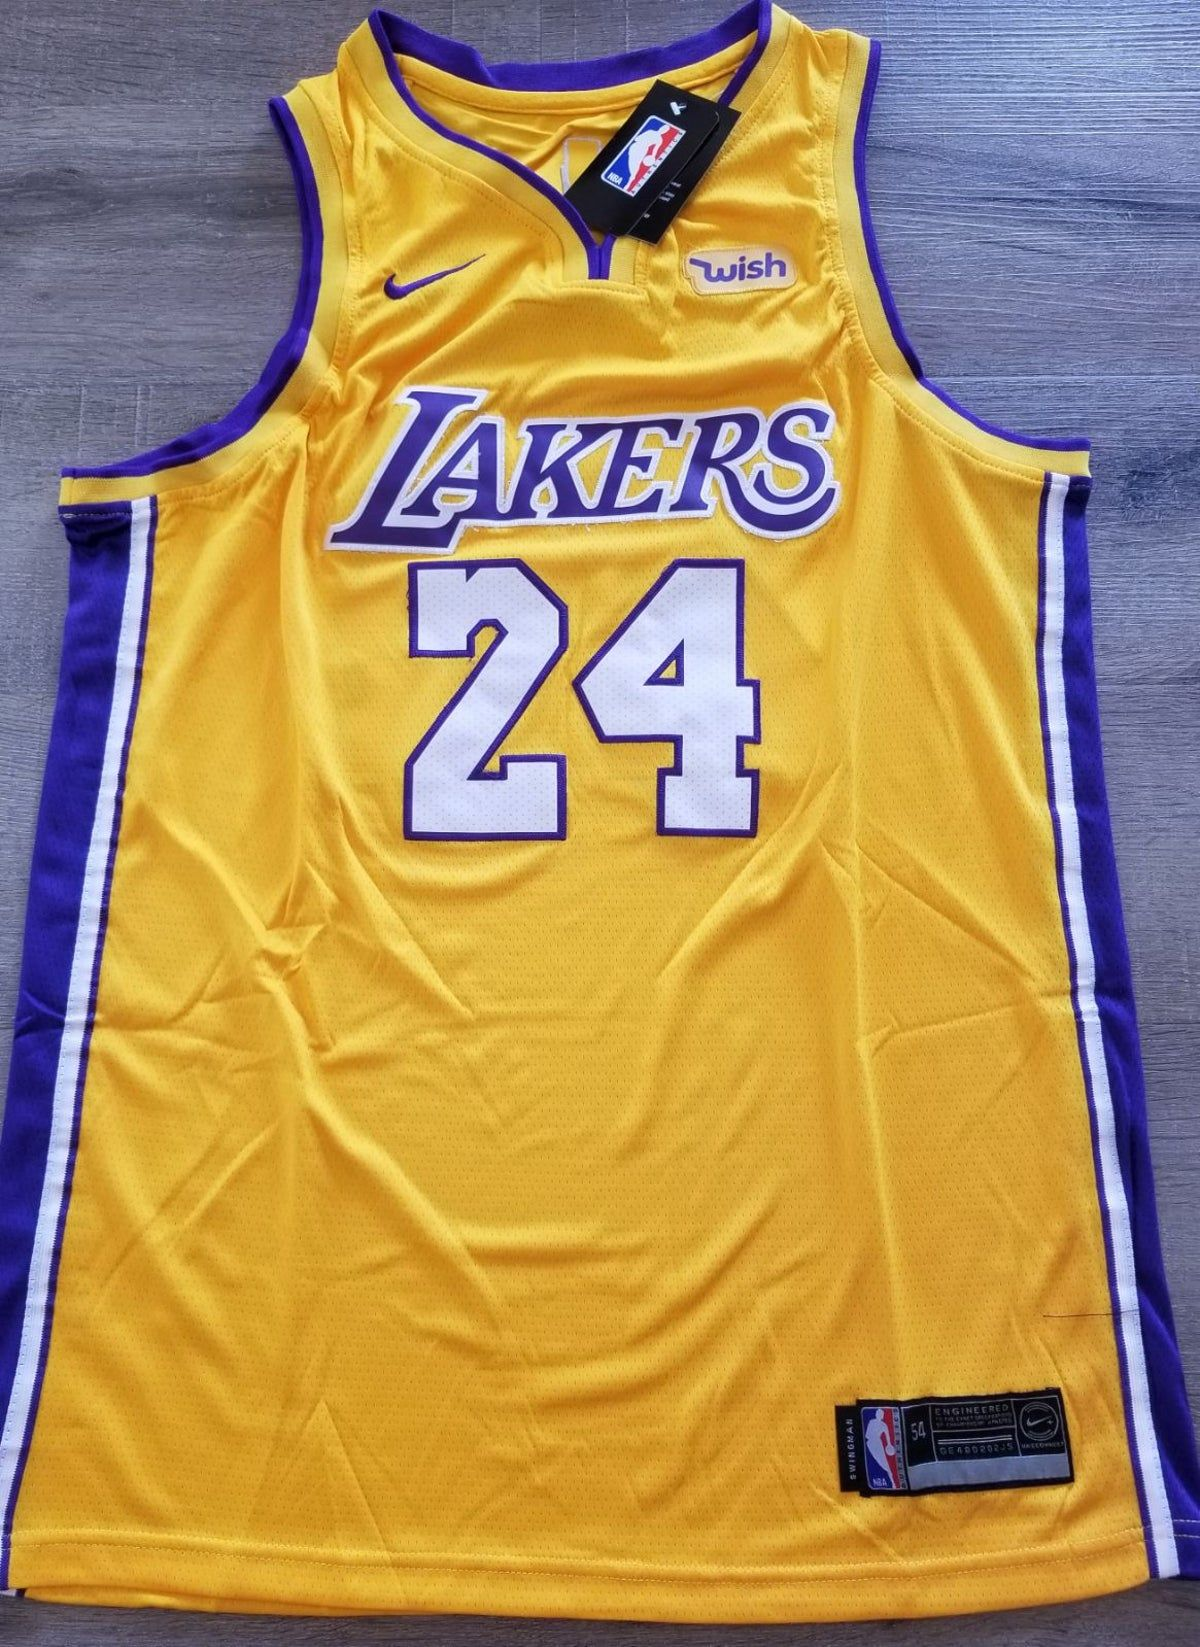 Lakers #24 Bryant mens xxl Jersey in 2021 | Jersey outfit, Lakers ...